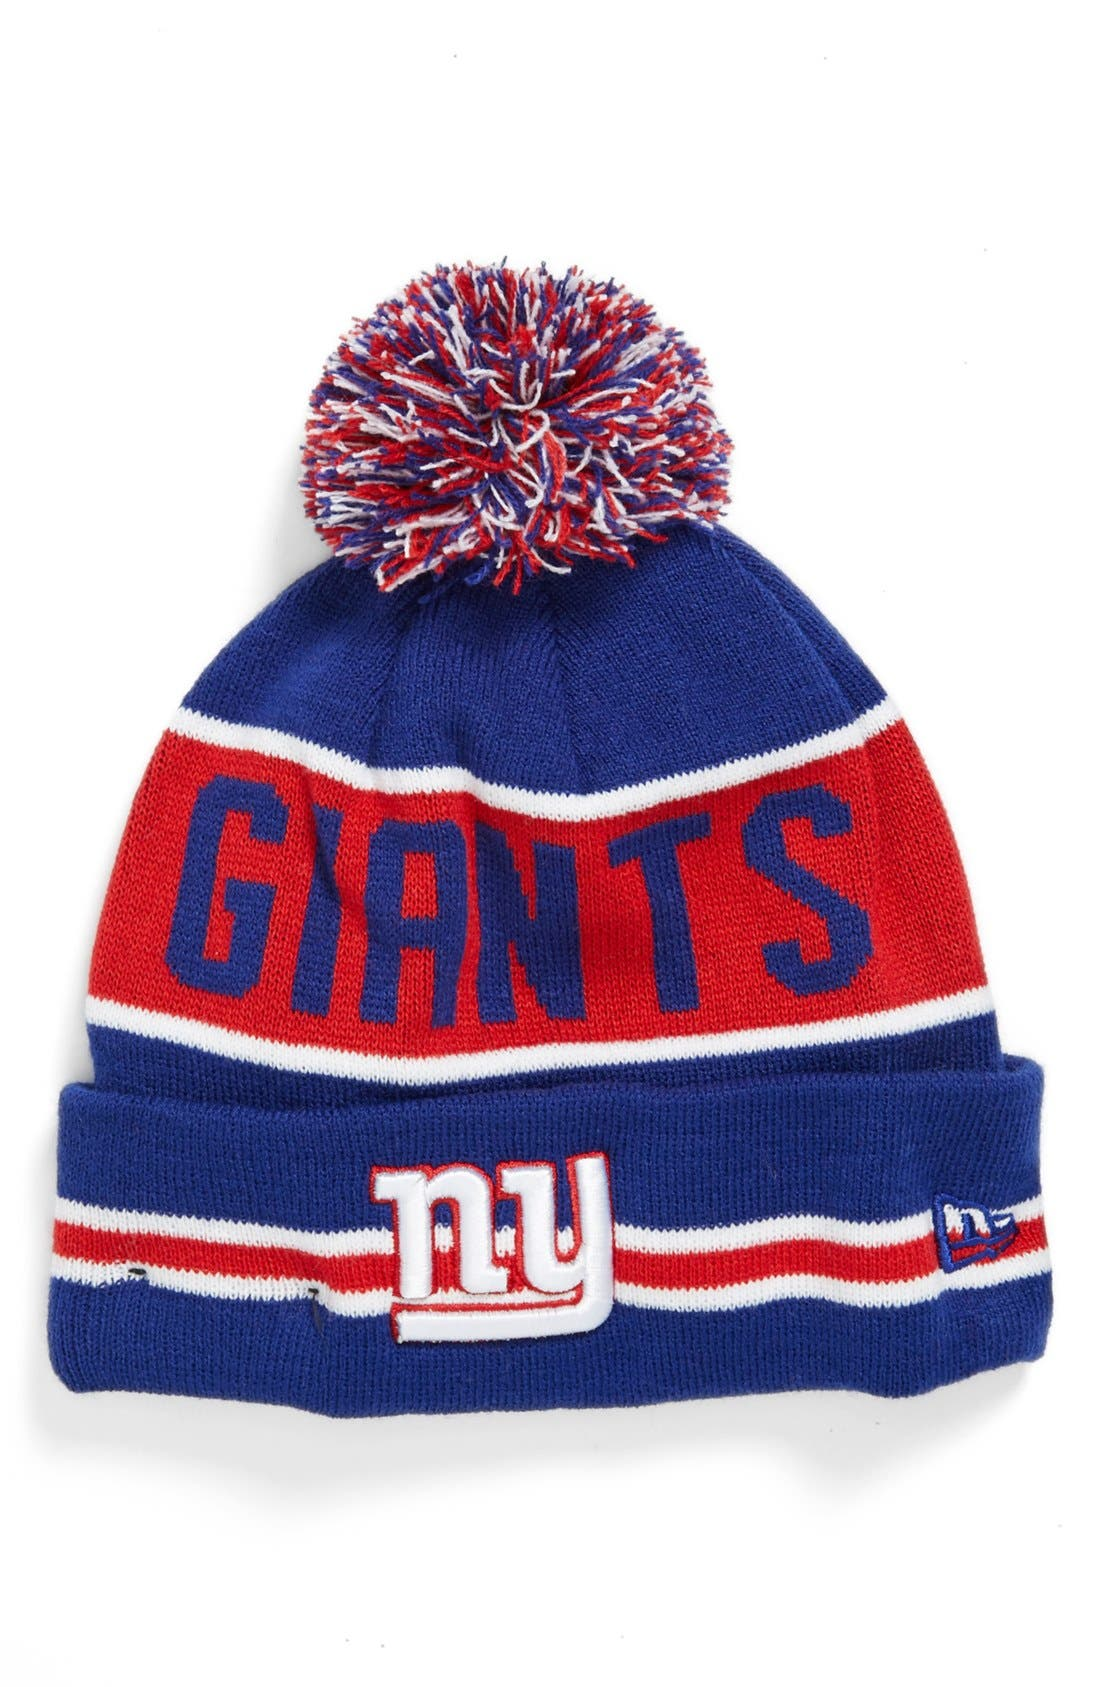 Alternate Image 1 Selected - New Era Cap 'The Coach - New York Giants' Knit Cap